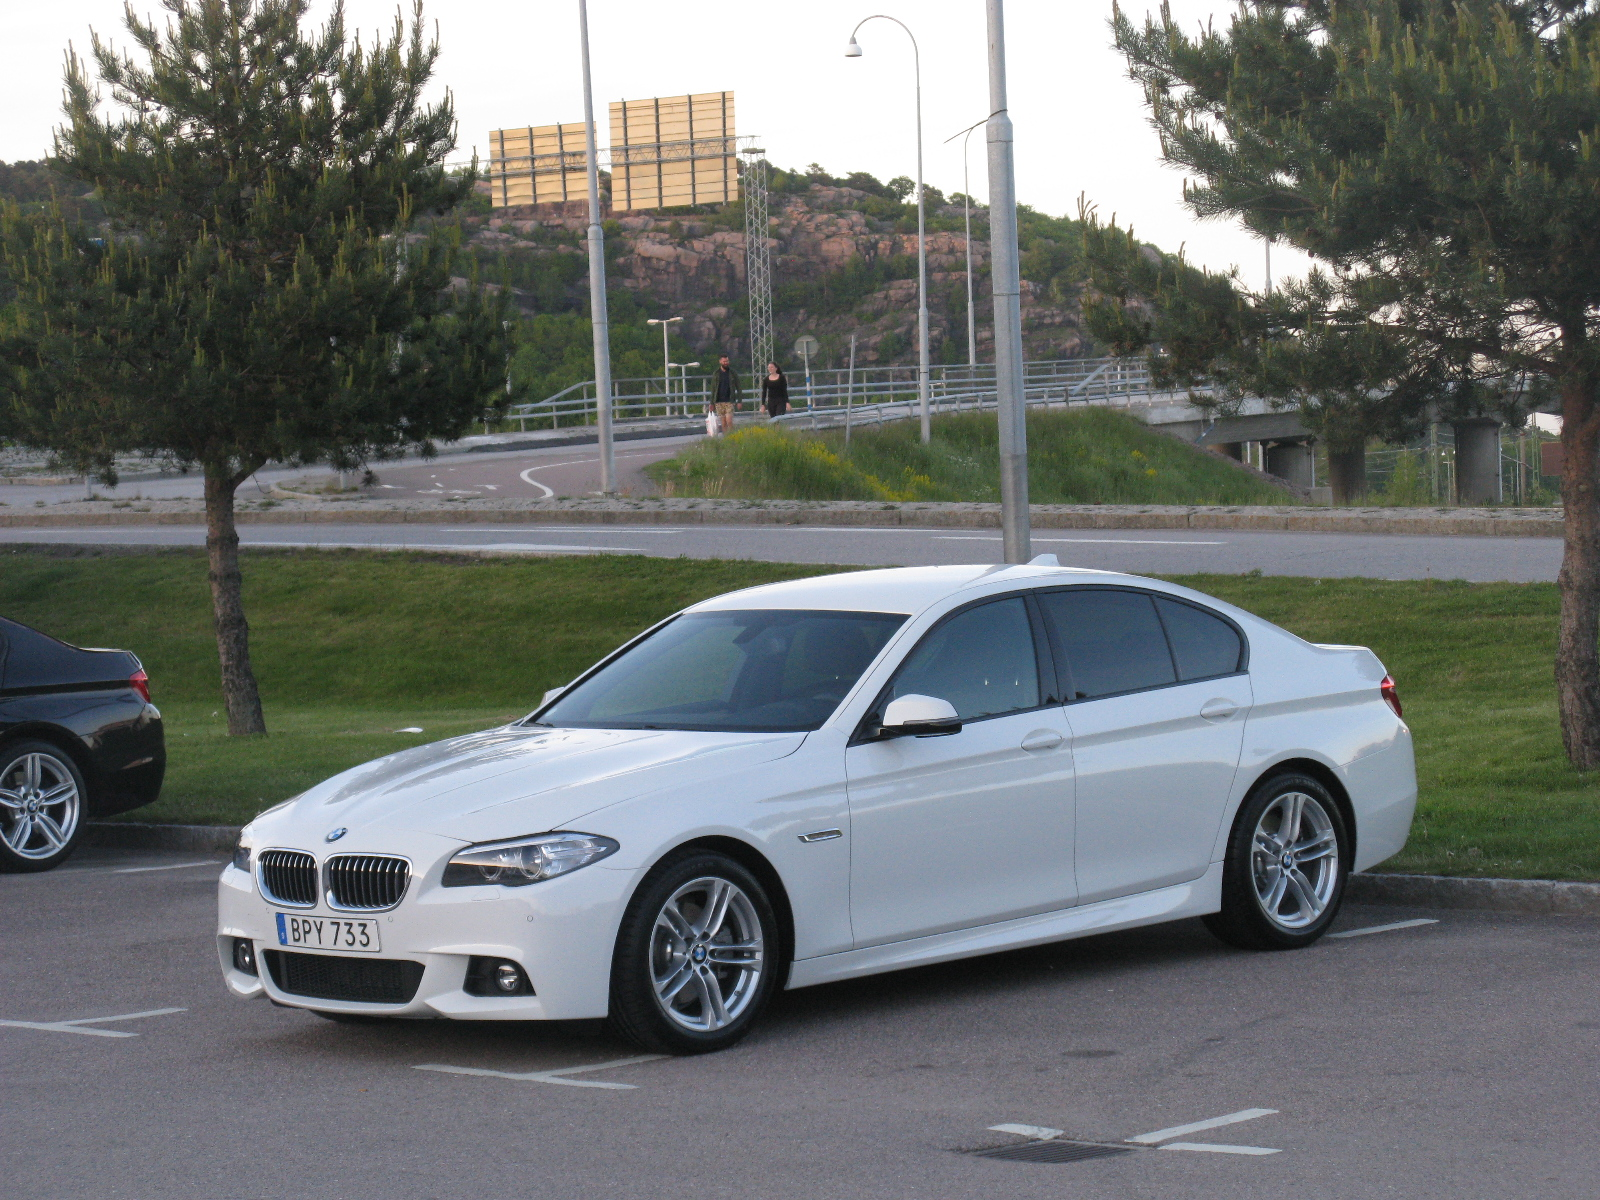 file bmw 520d m sport f10 14184315216 jpg wikimedia commons. Black Bedroom Furniture Sets. Home Design Ideas